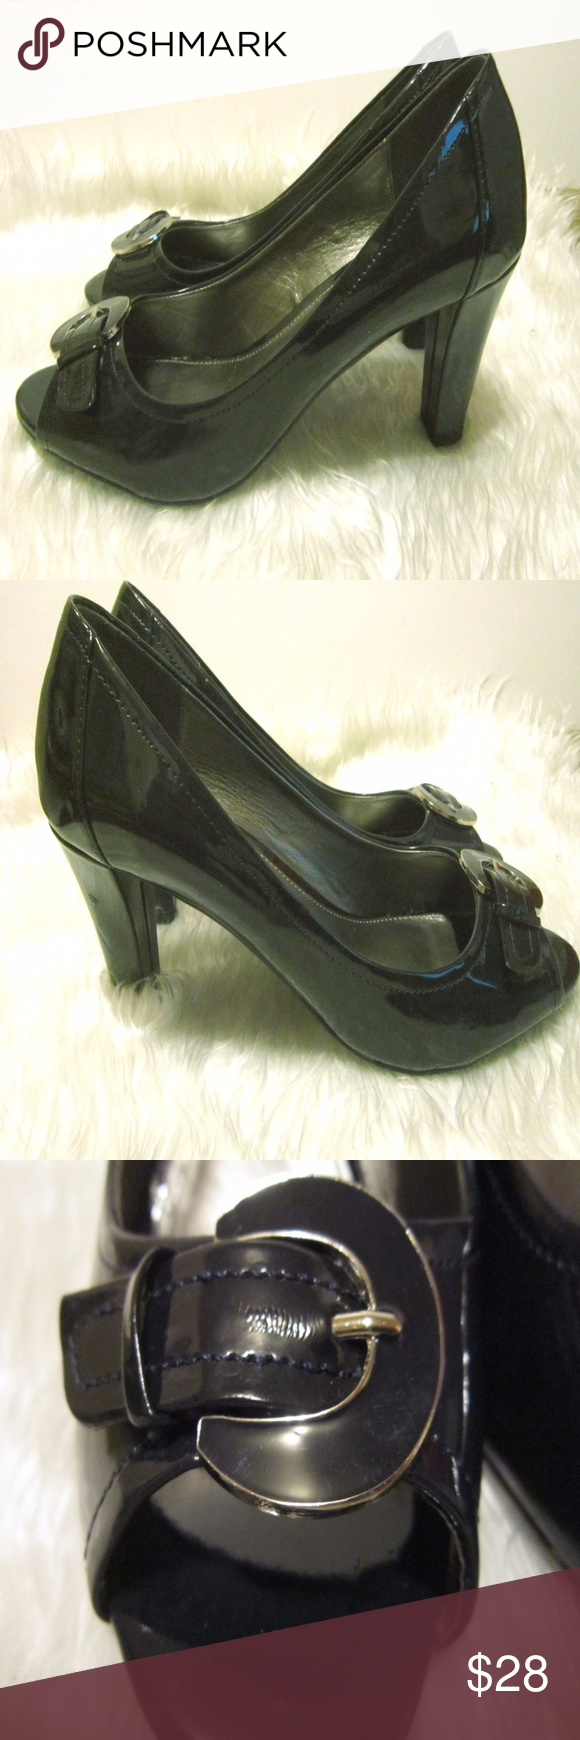 d4bd1c7c9141 COACH AND FOUR Peep Toe Buckle Leather Heel Pumps